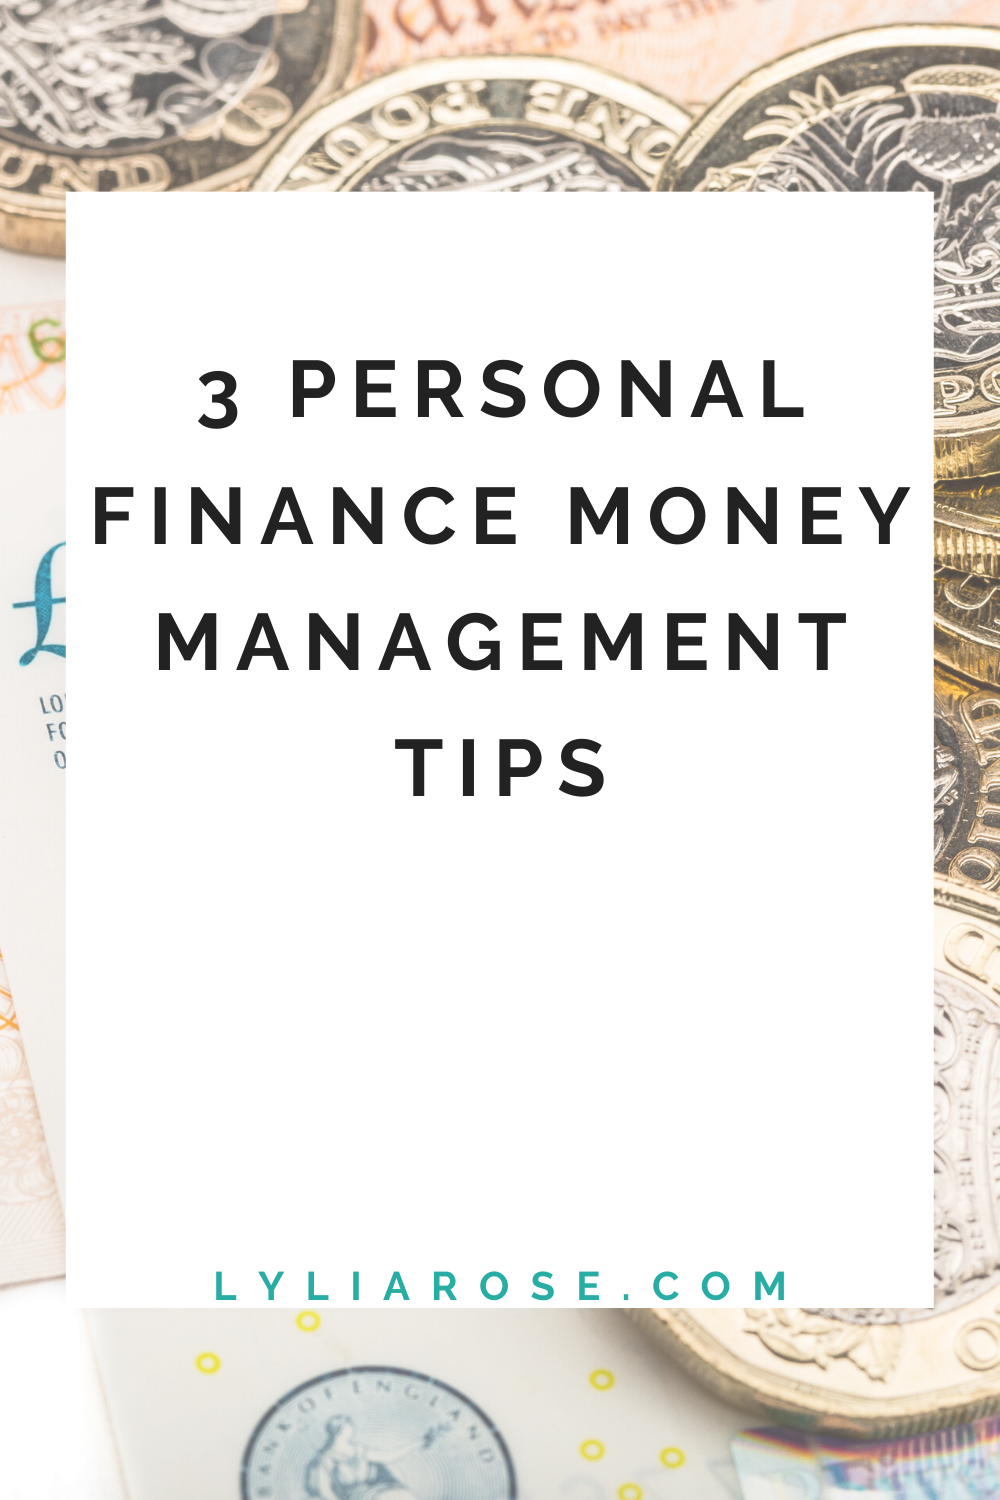 3 personal finance money managing tips (1)